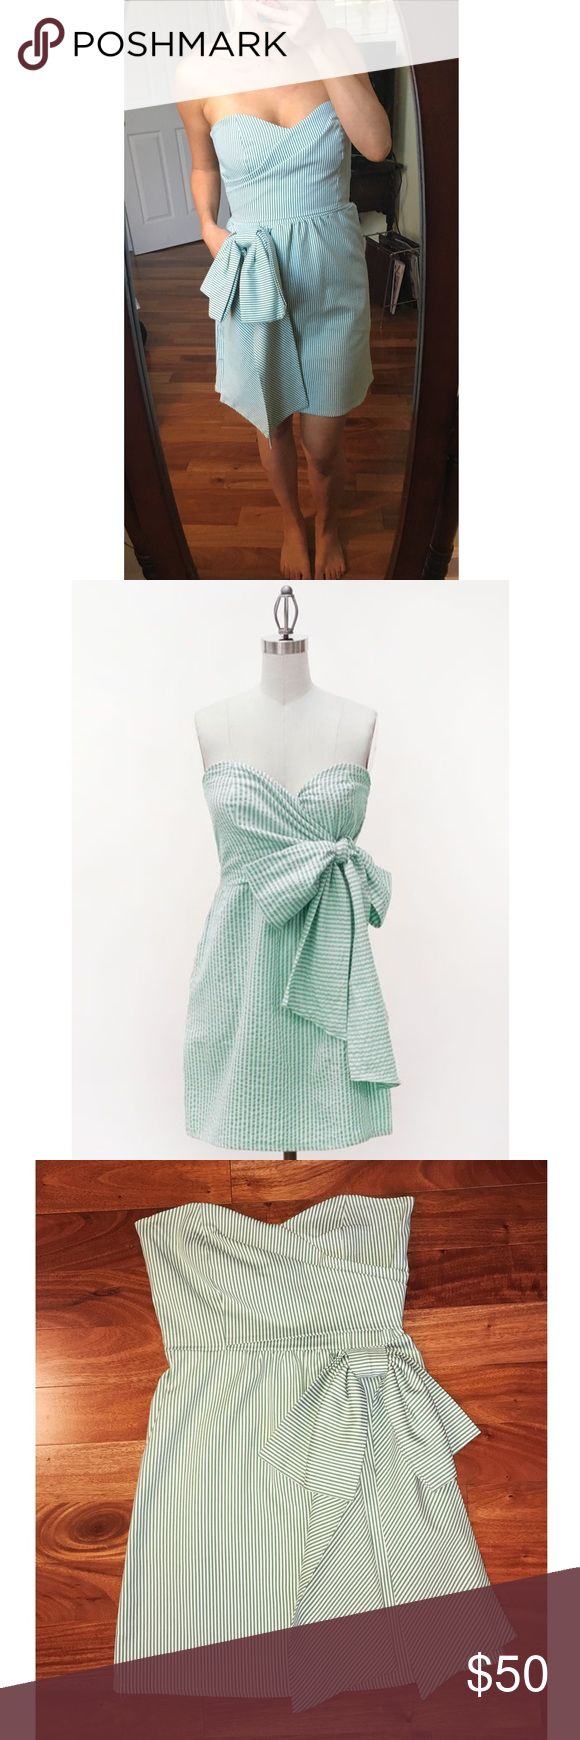 Judith March Seersucker Dress worn once!! Judith March Green Seersucker Dress size M only worn once and in AMAZING condition. Dress has pockets as well! Feel free to ask any questions 😊 *picture of pockets on dress is the exact same dress in different color * Judith March Dresses Mini